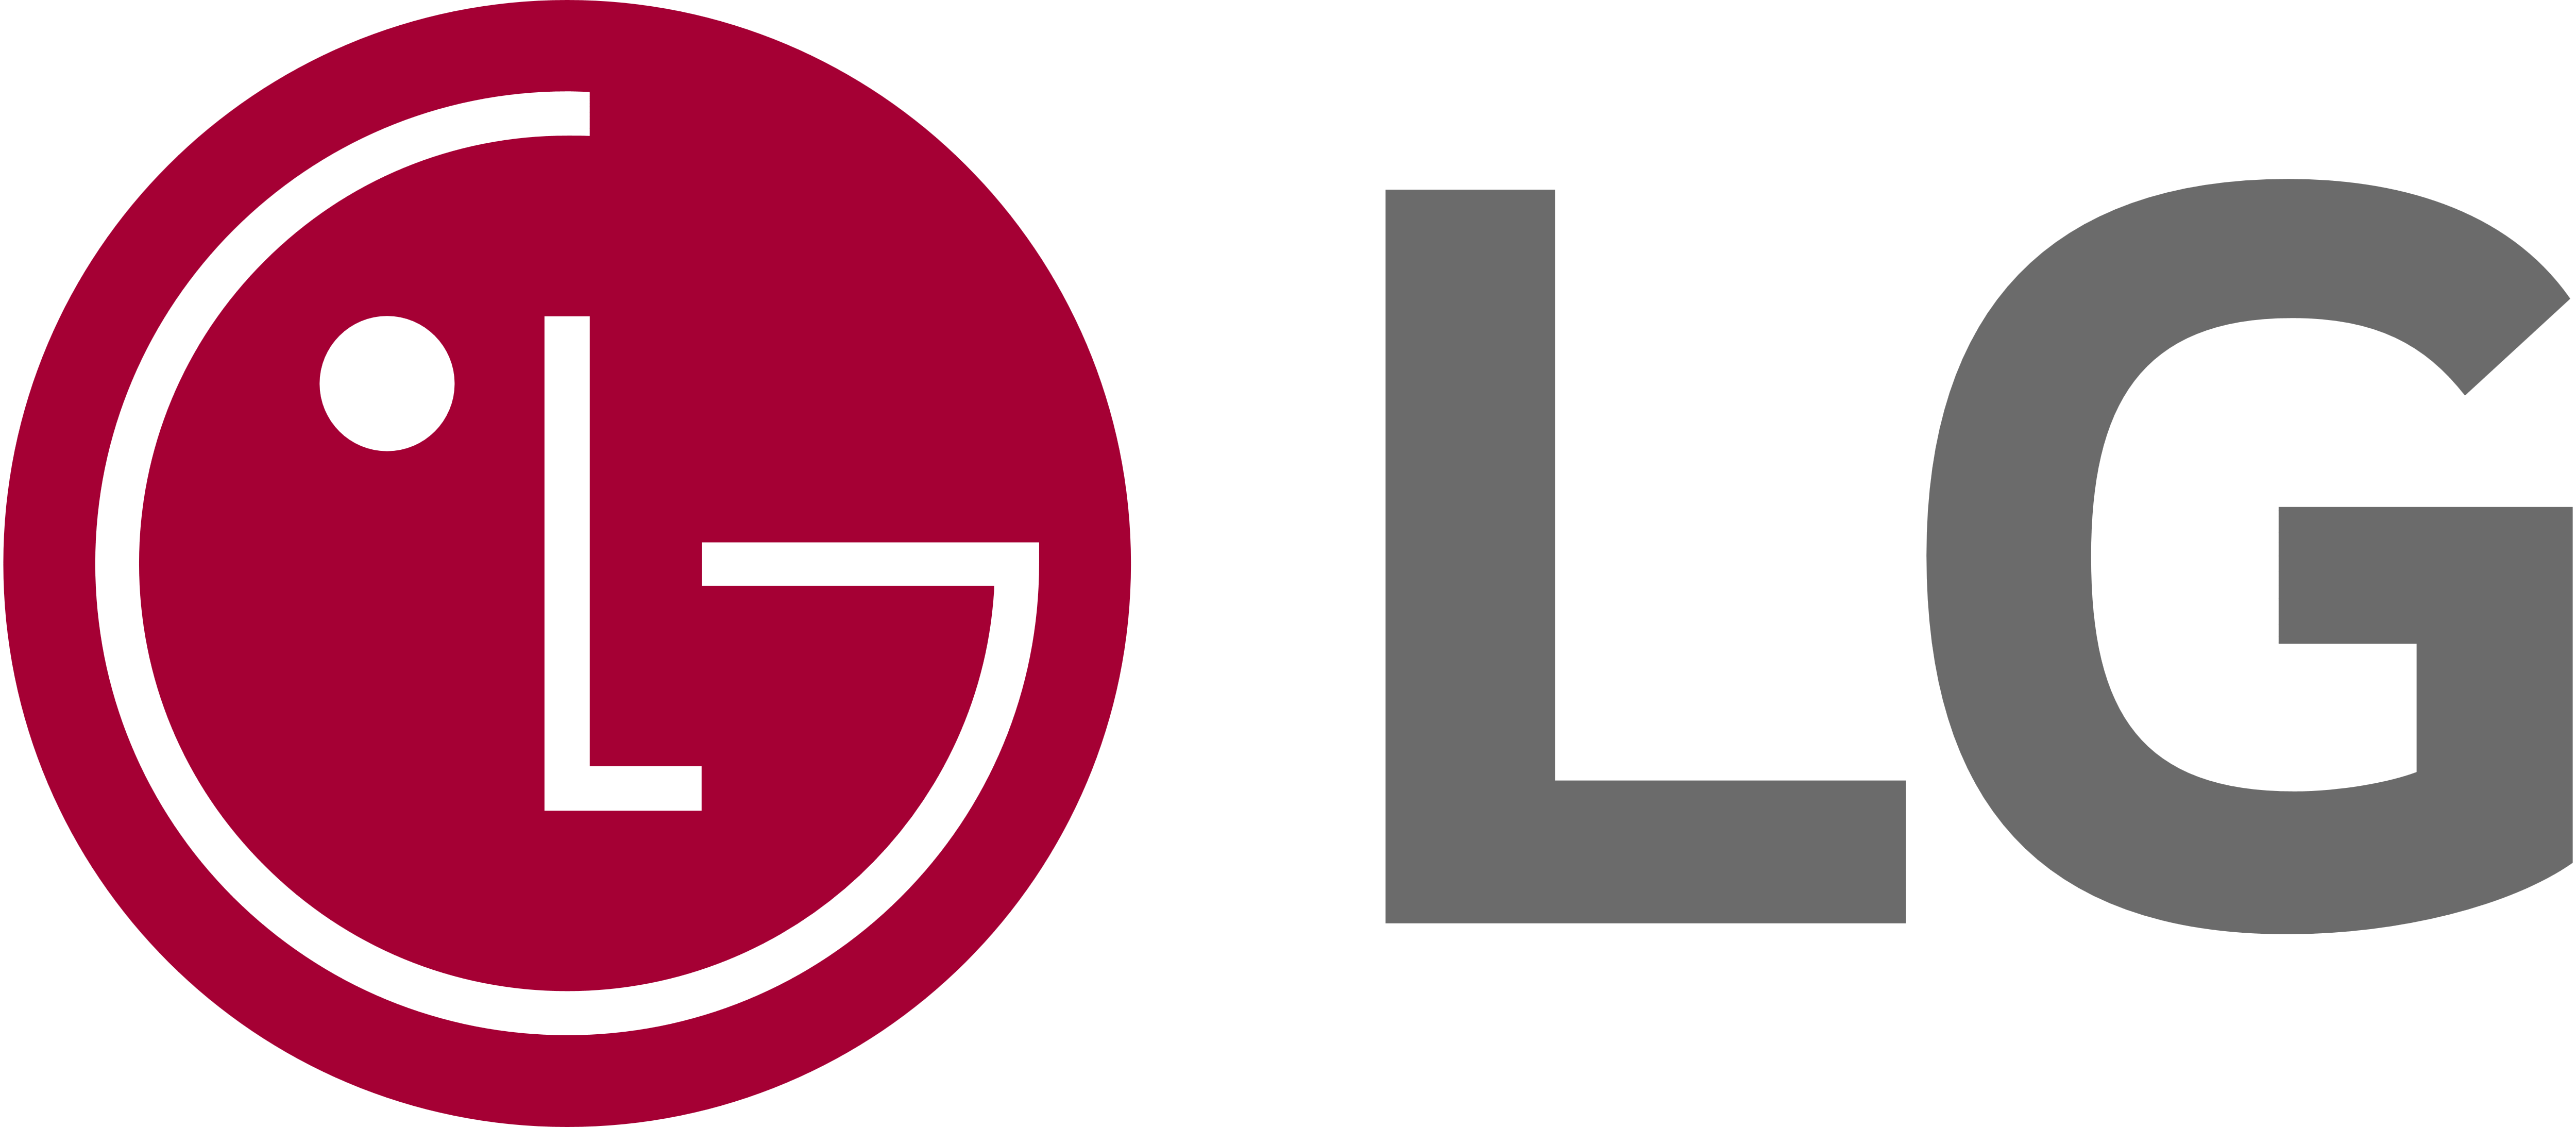 LG Fridge Mechanic, LG Fridge Service